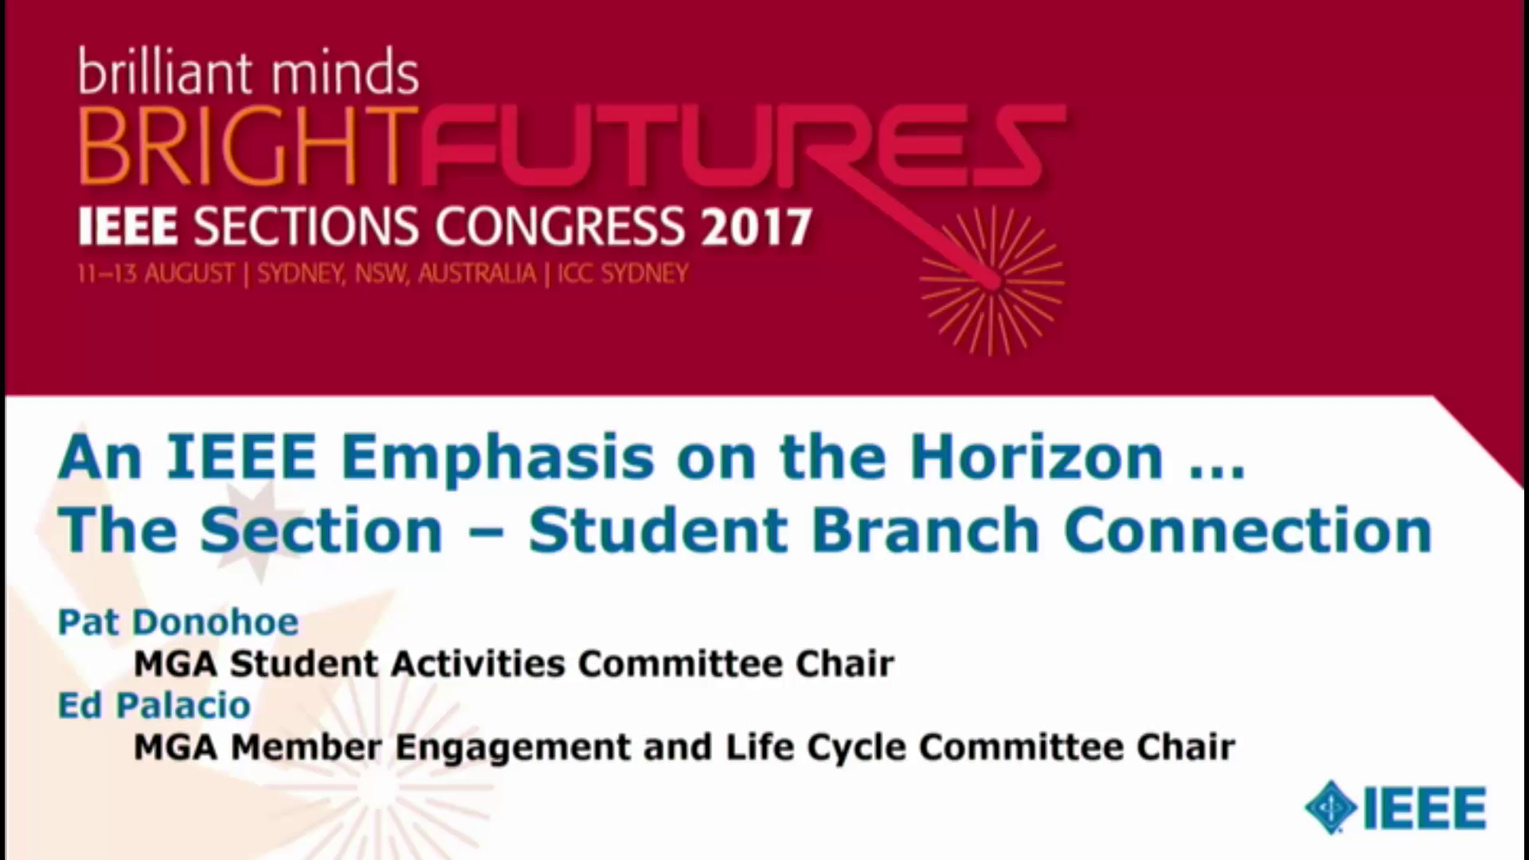 Section-Student Branch Connection - Pat Donohoe - Brief Sessions: Sections Congress 2017